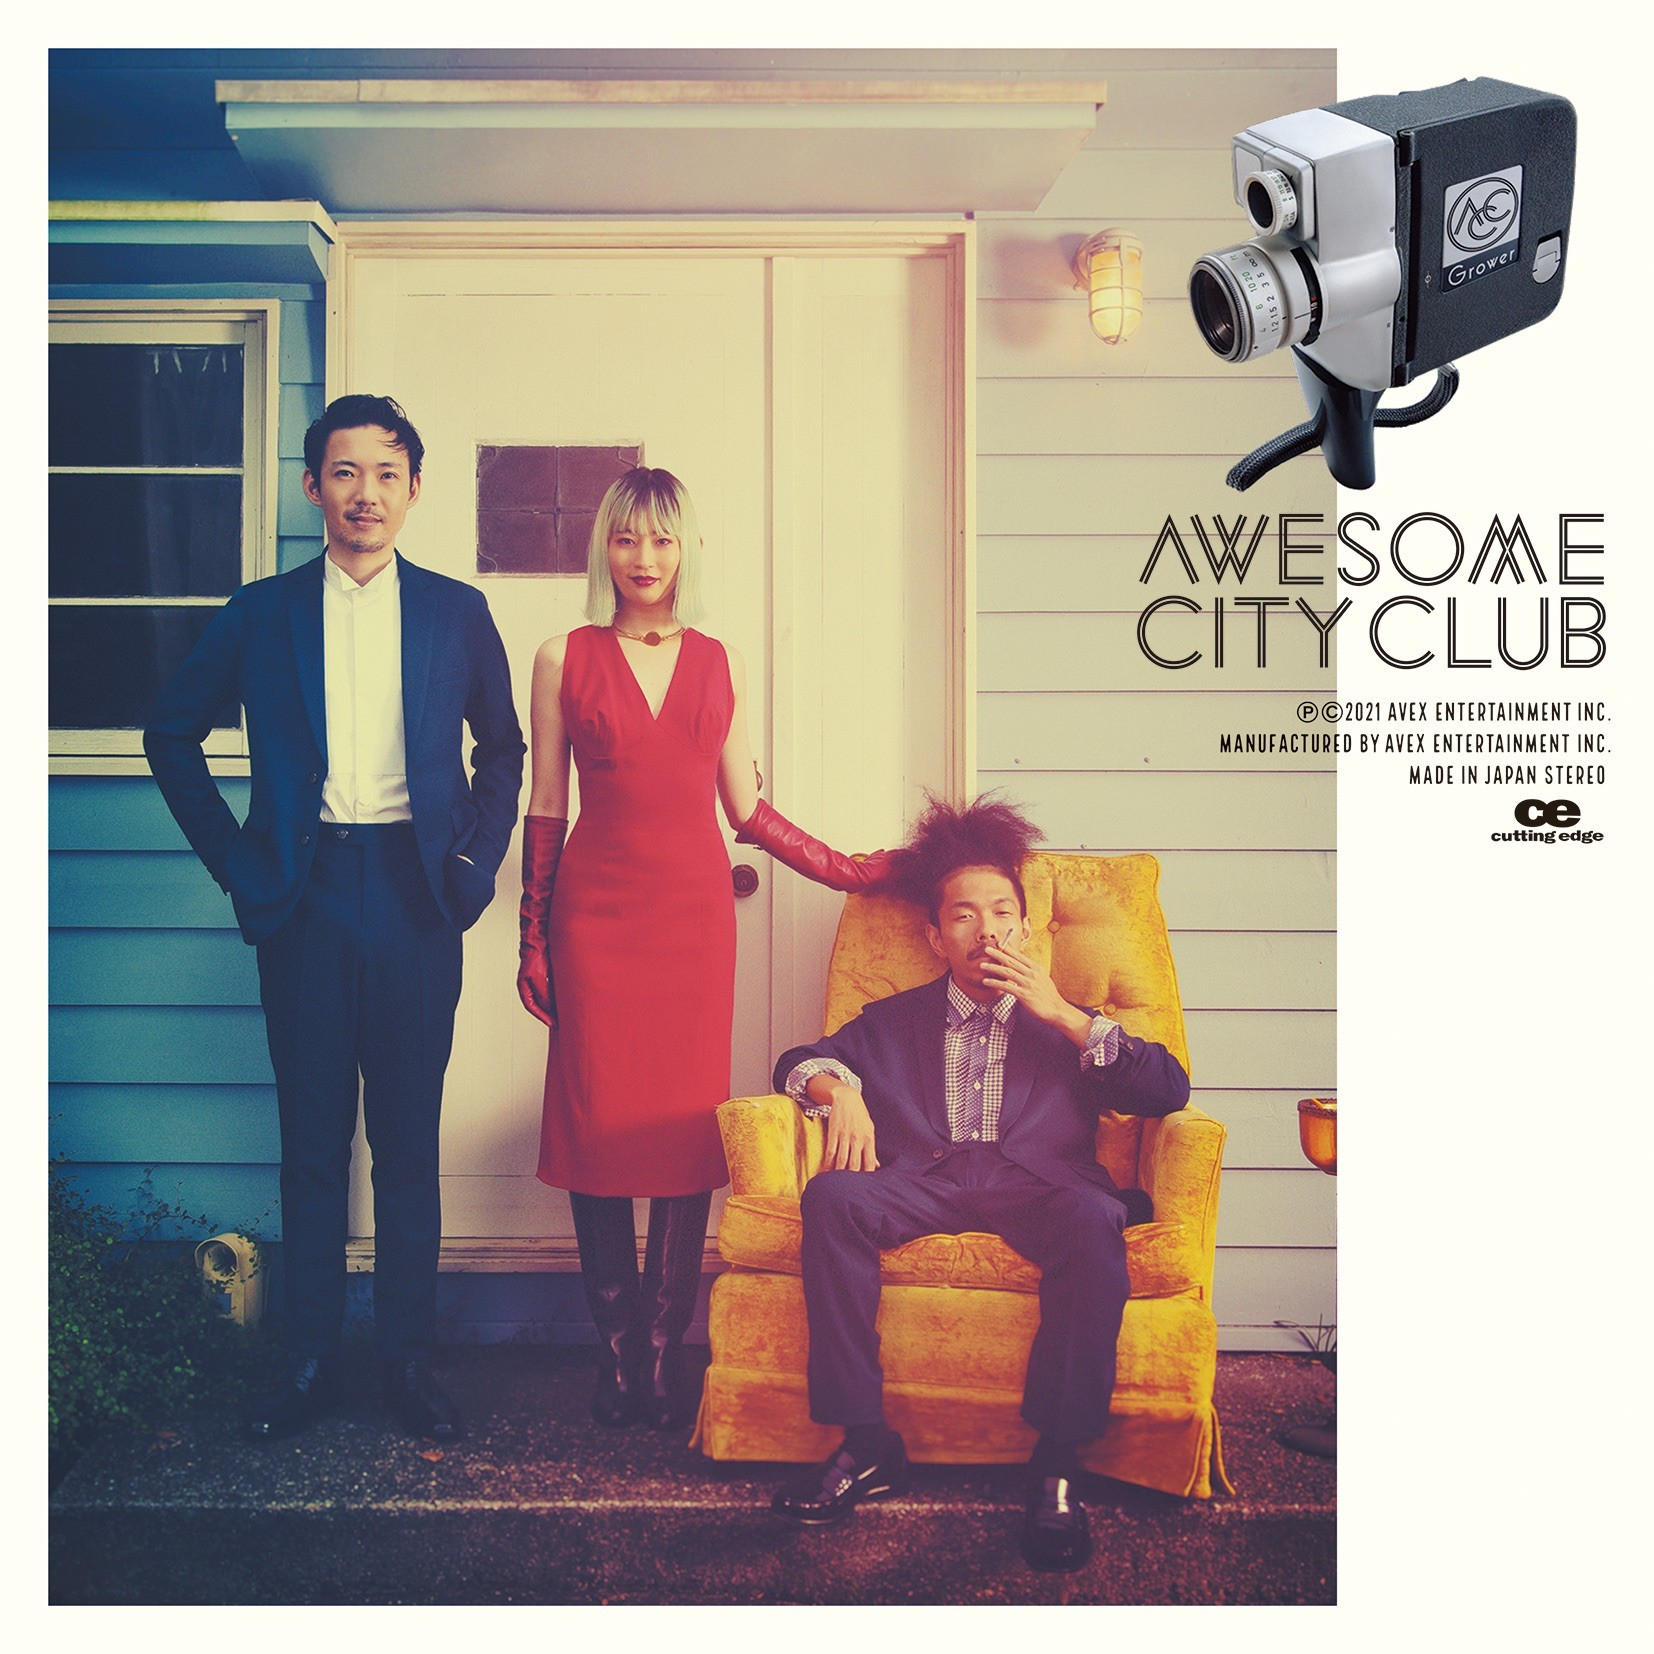 [Single] Awesome City Club – Grower [24bit Lossless + MP3 320 / WEB] [2021.02.10]